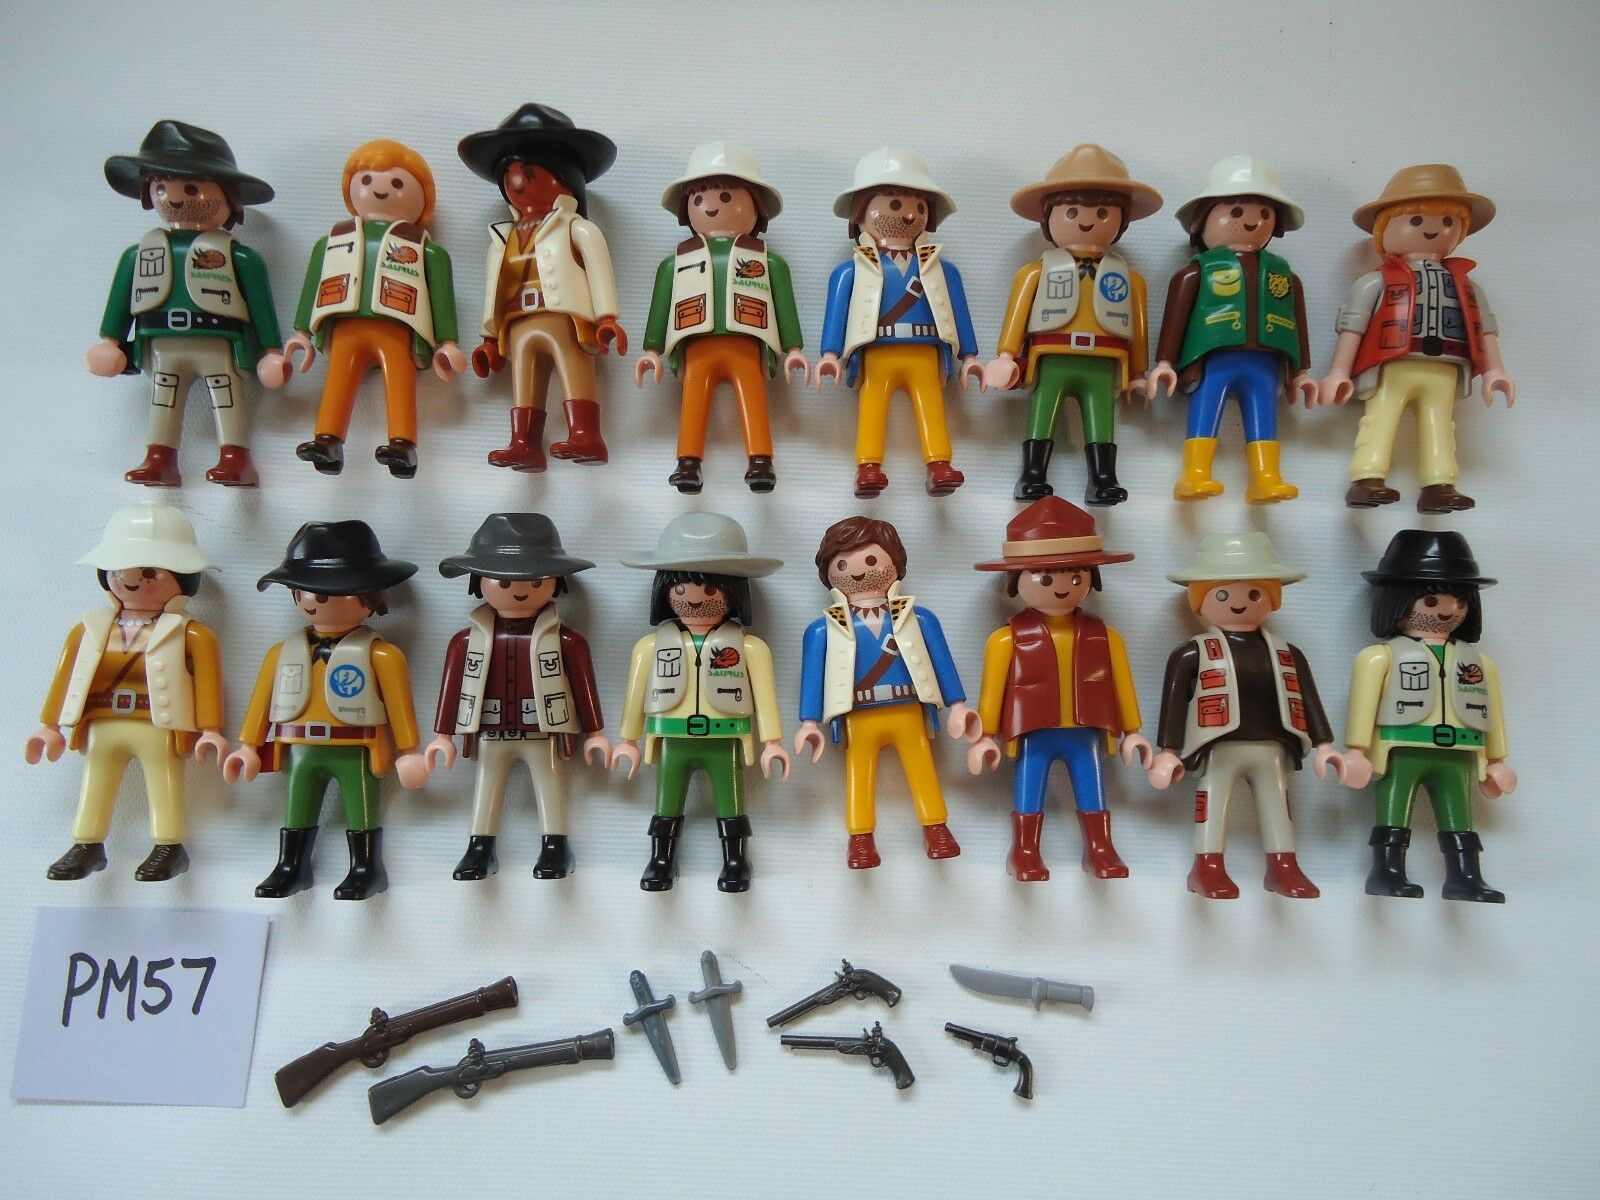 Playmobil people figures figures figures lot of safari zoo dino hunters explorers EUC PM57 9a91e9